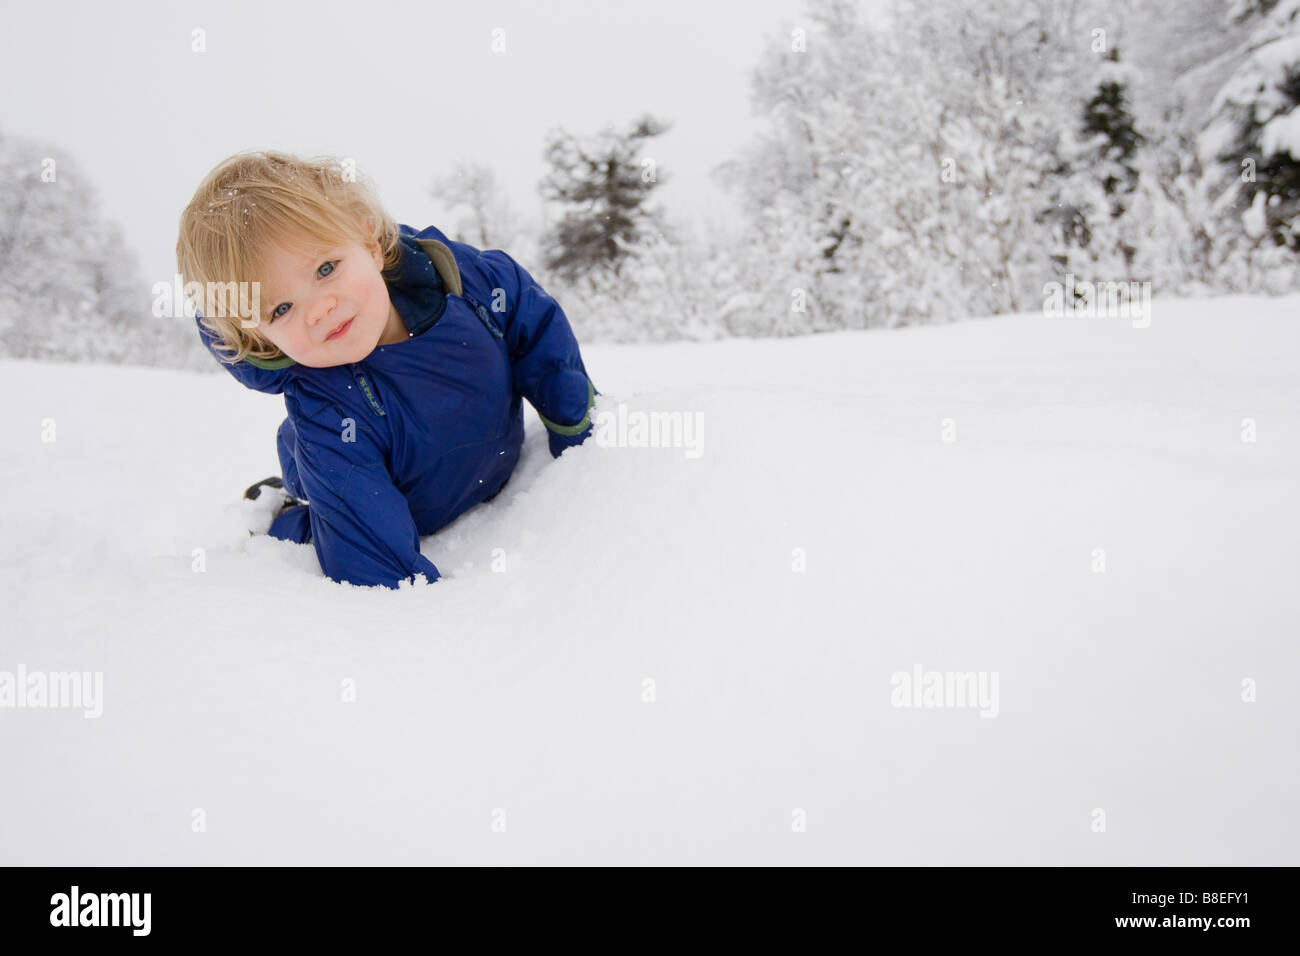 Young boy on a winter walk in Pedro Bay, Alaska - Stock Image